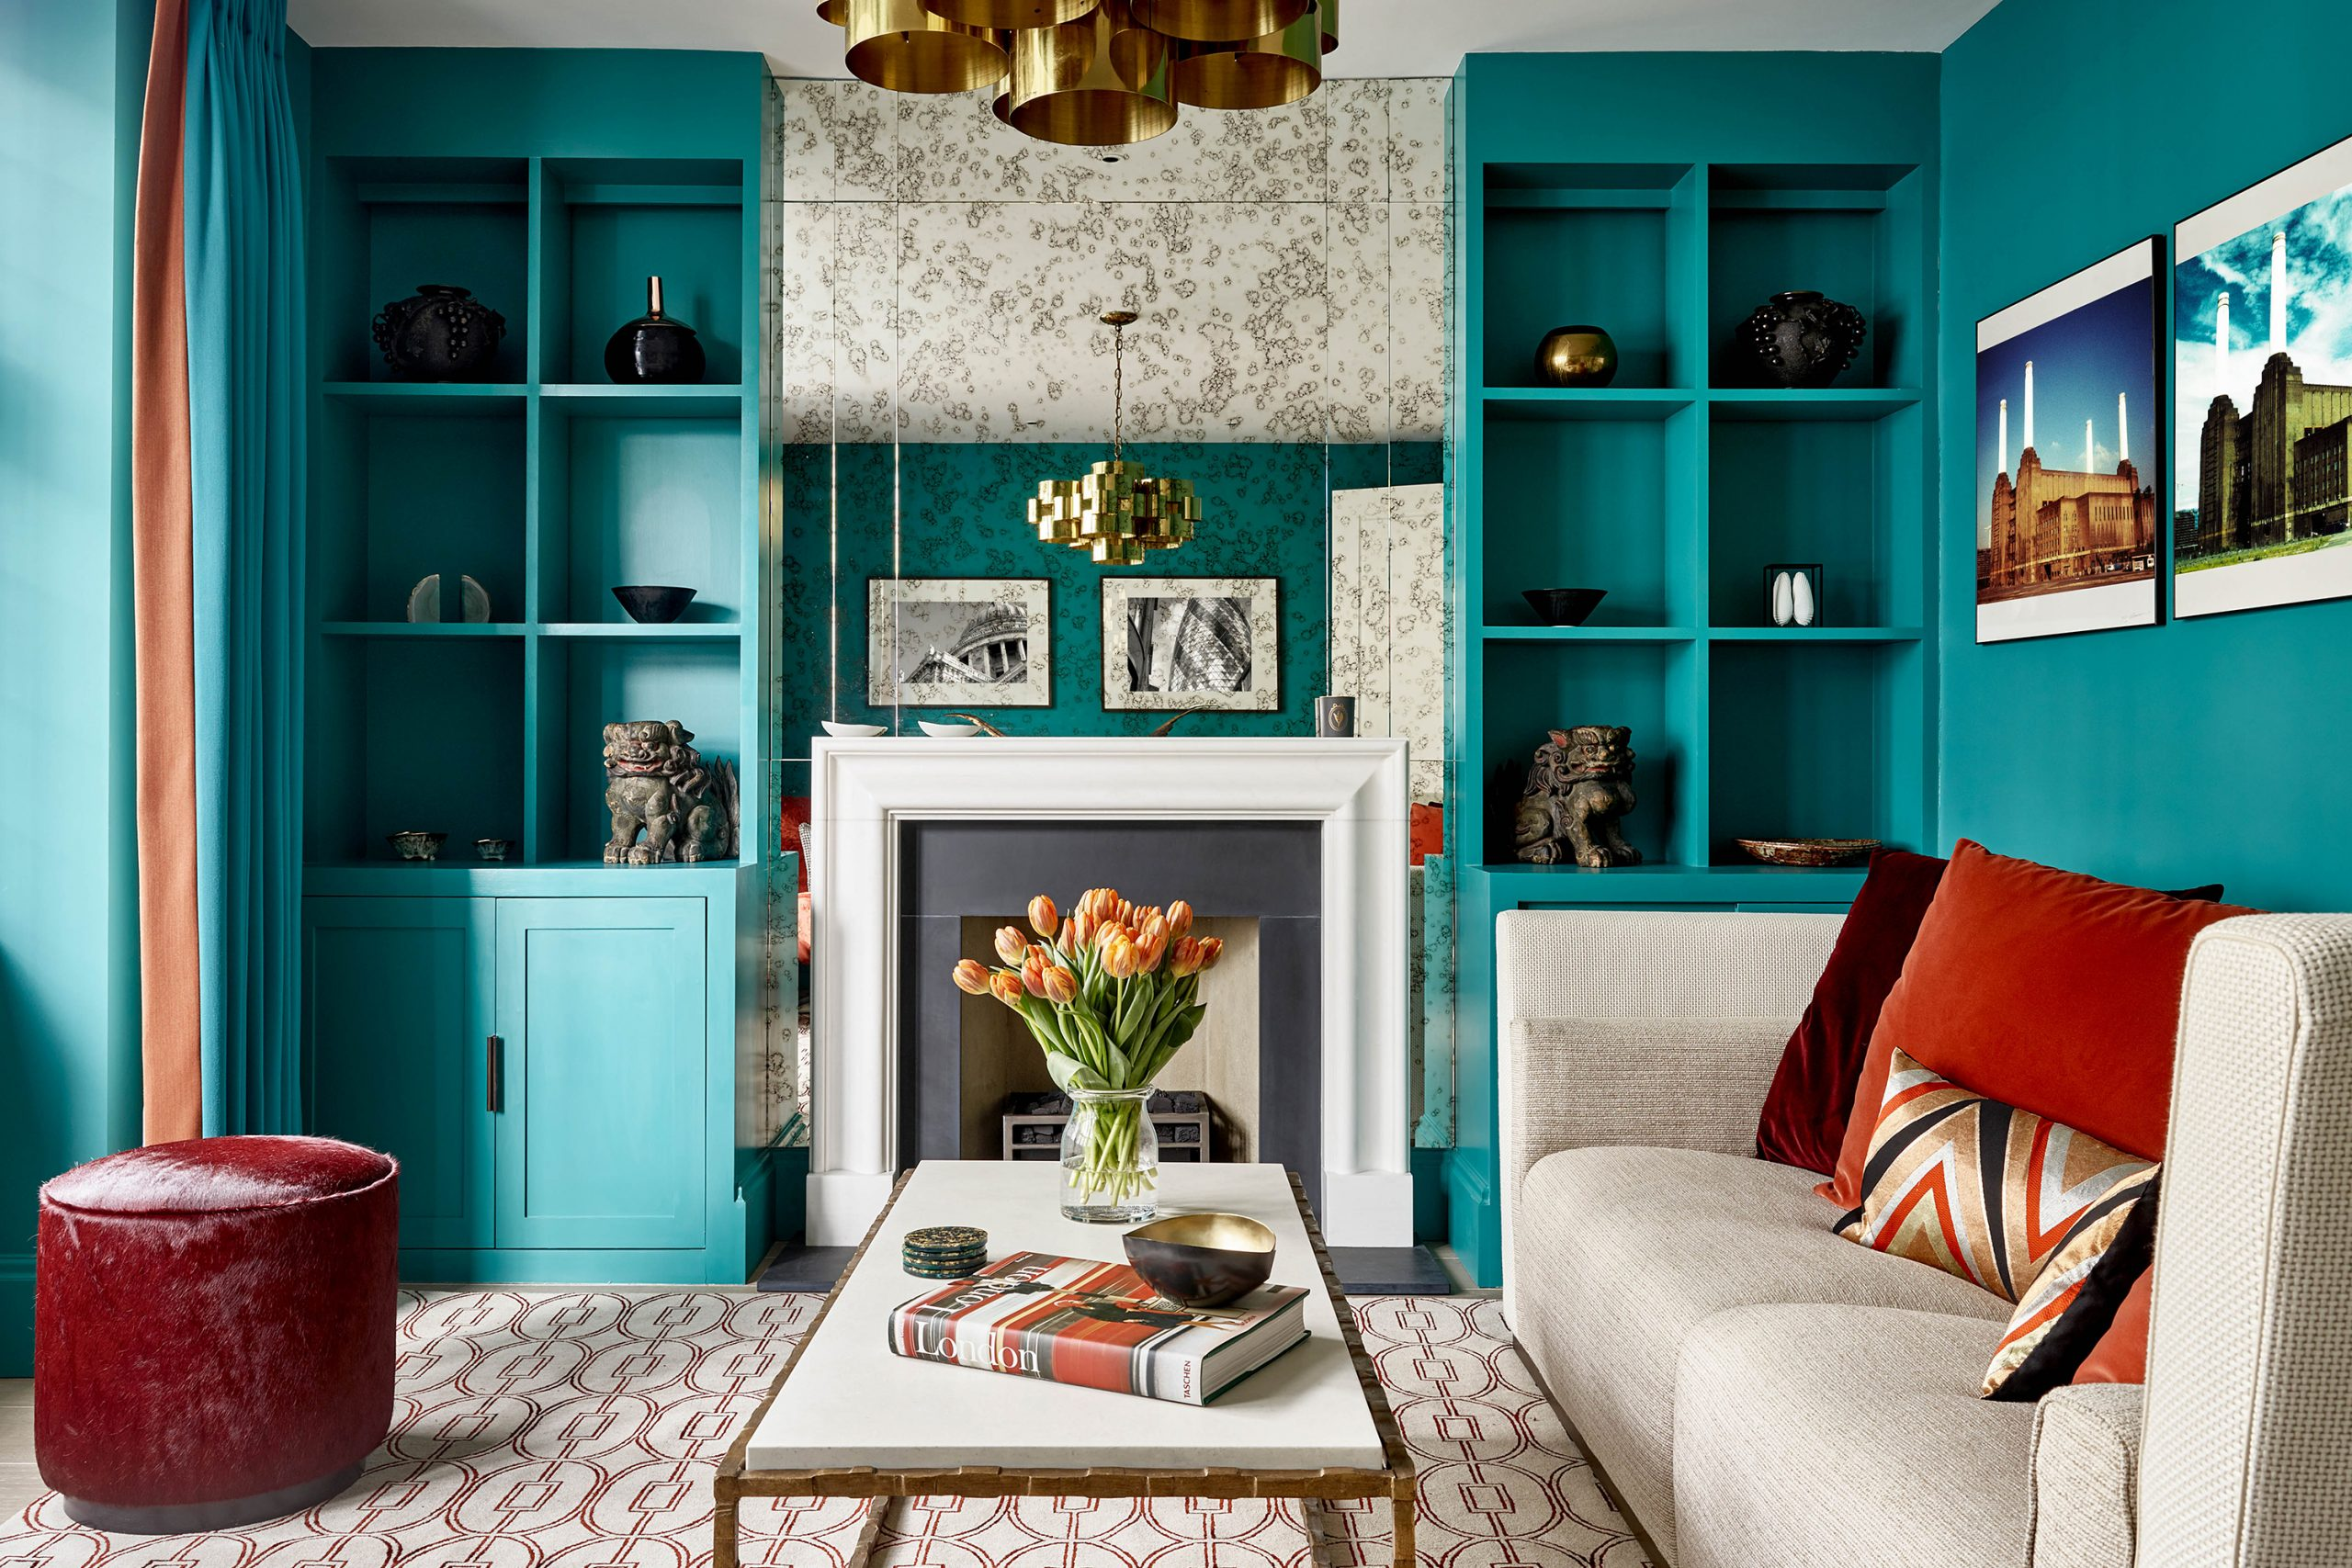 Master the art of every colour scheme through painting and decorating